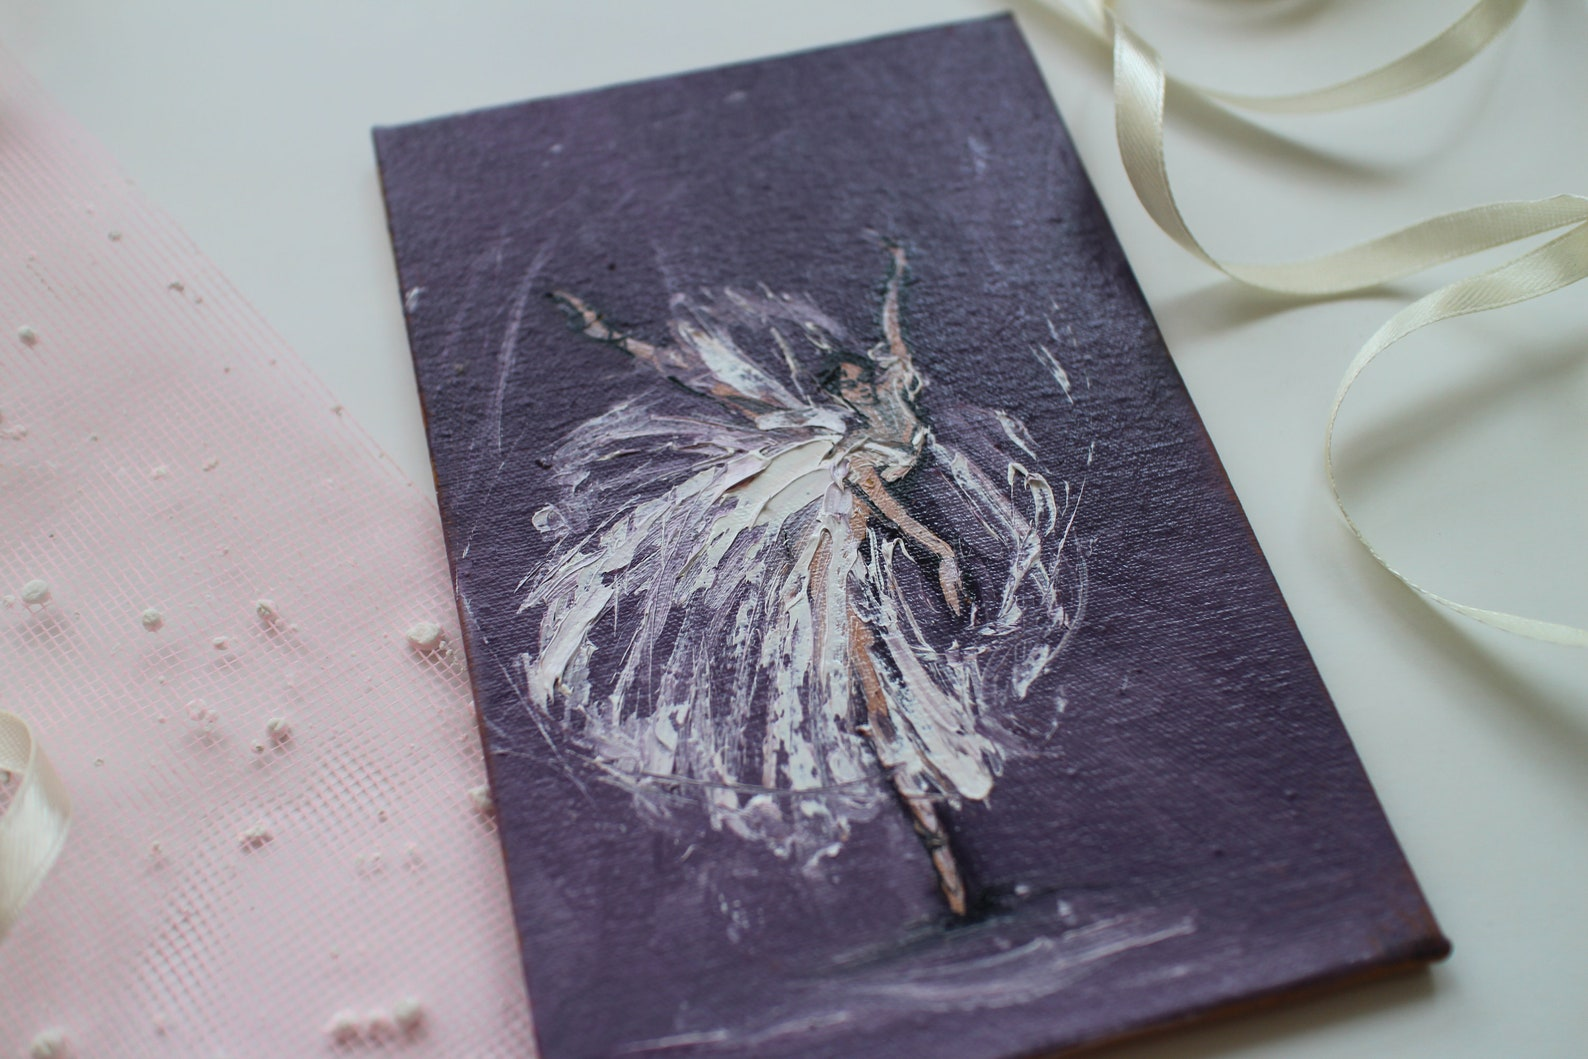 ballet painting, ballerina painting oil, ballet painting oil, dancer painting, ballet dancer art, mini painting, pointe shoes, b